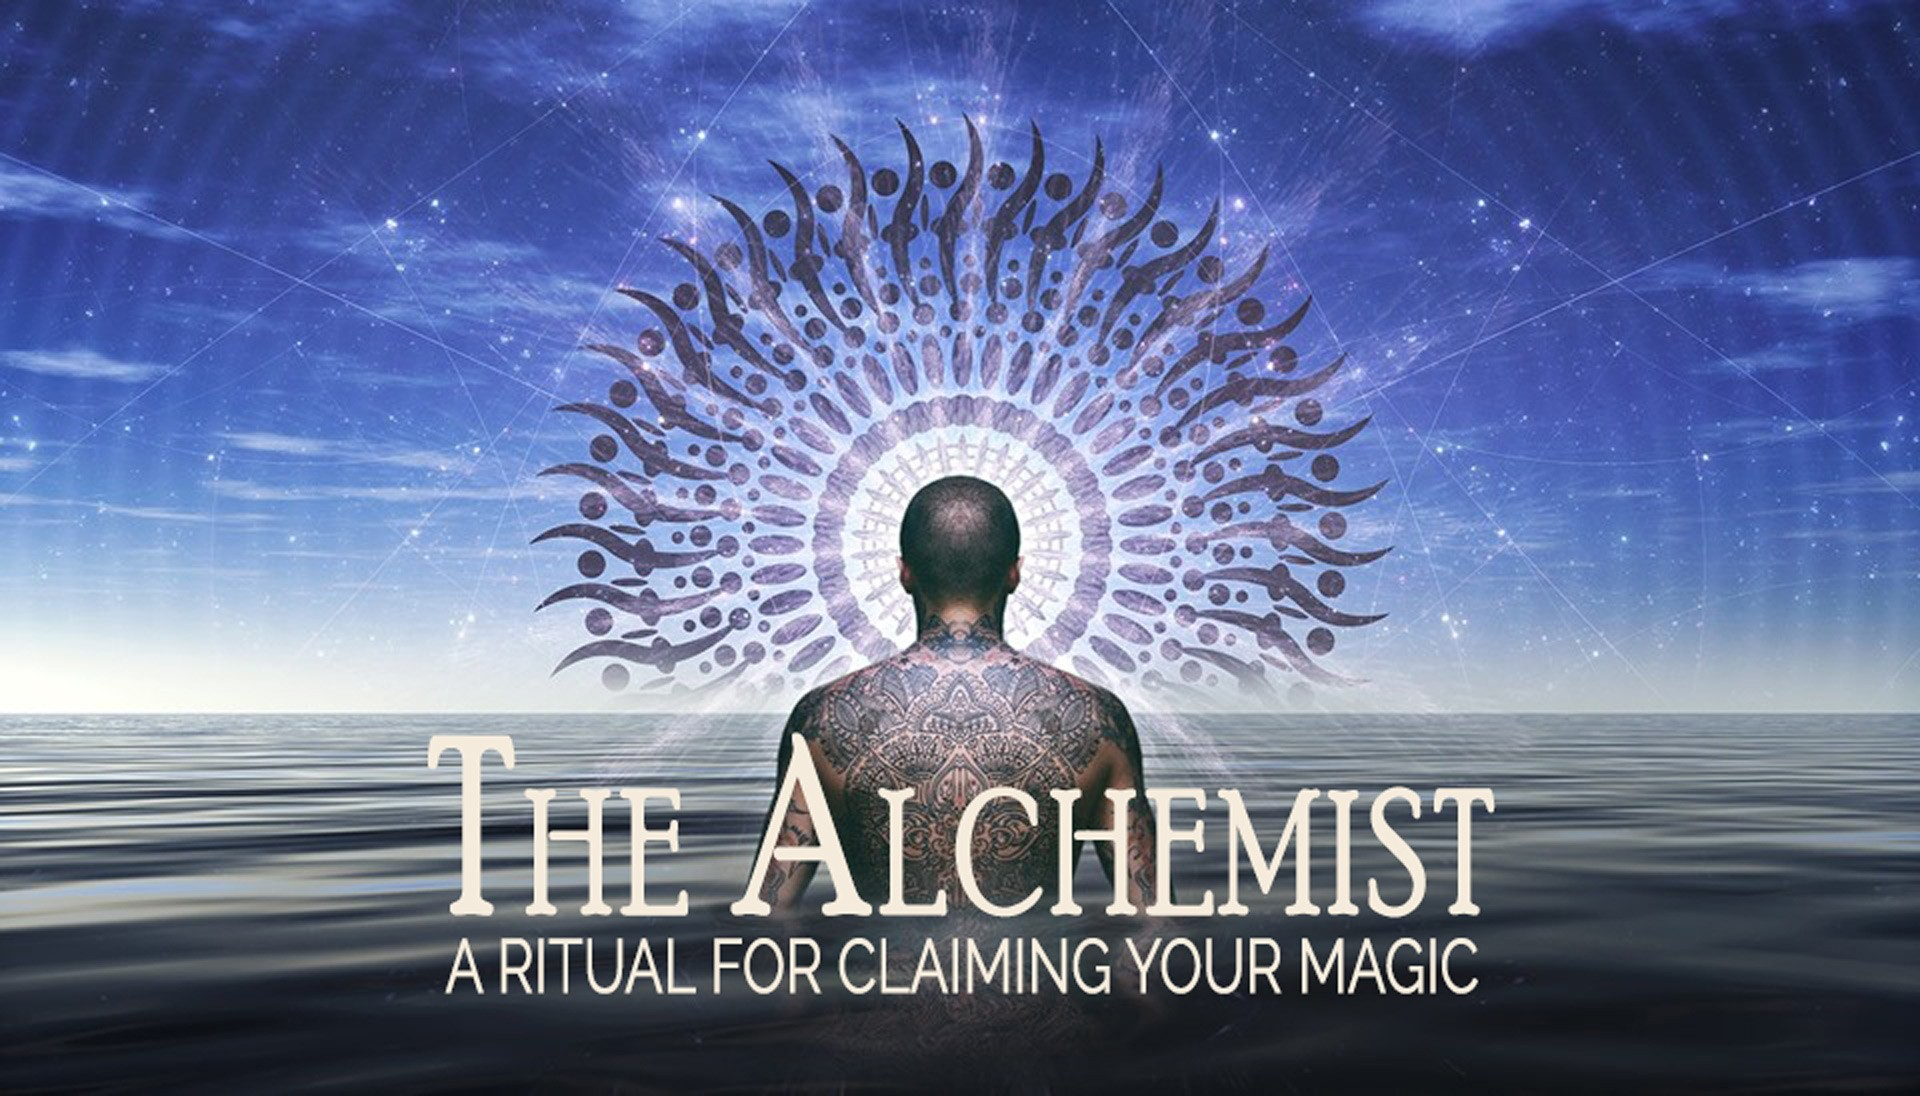 The Alchemist - A Ritual For Claiming Your Magic